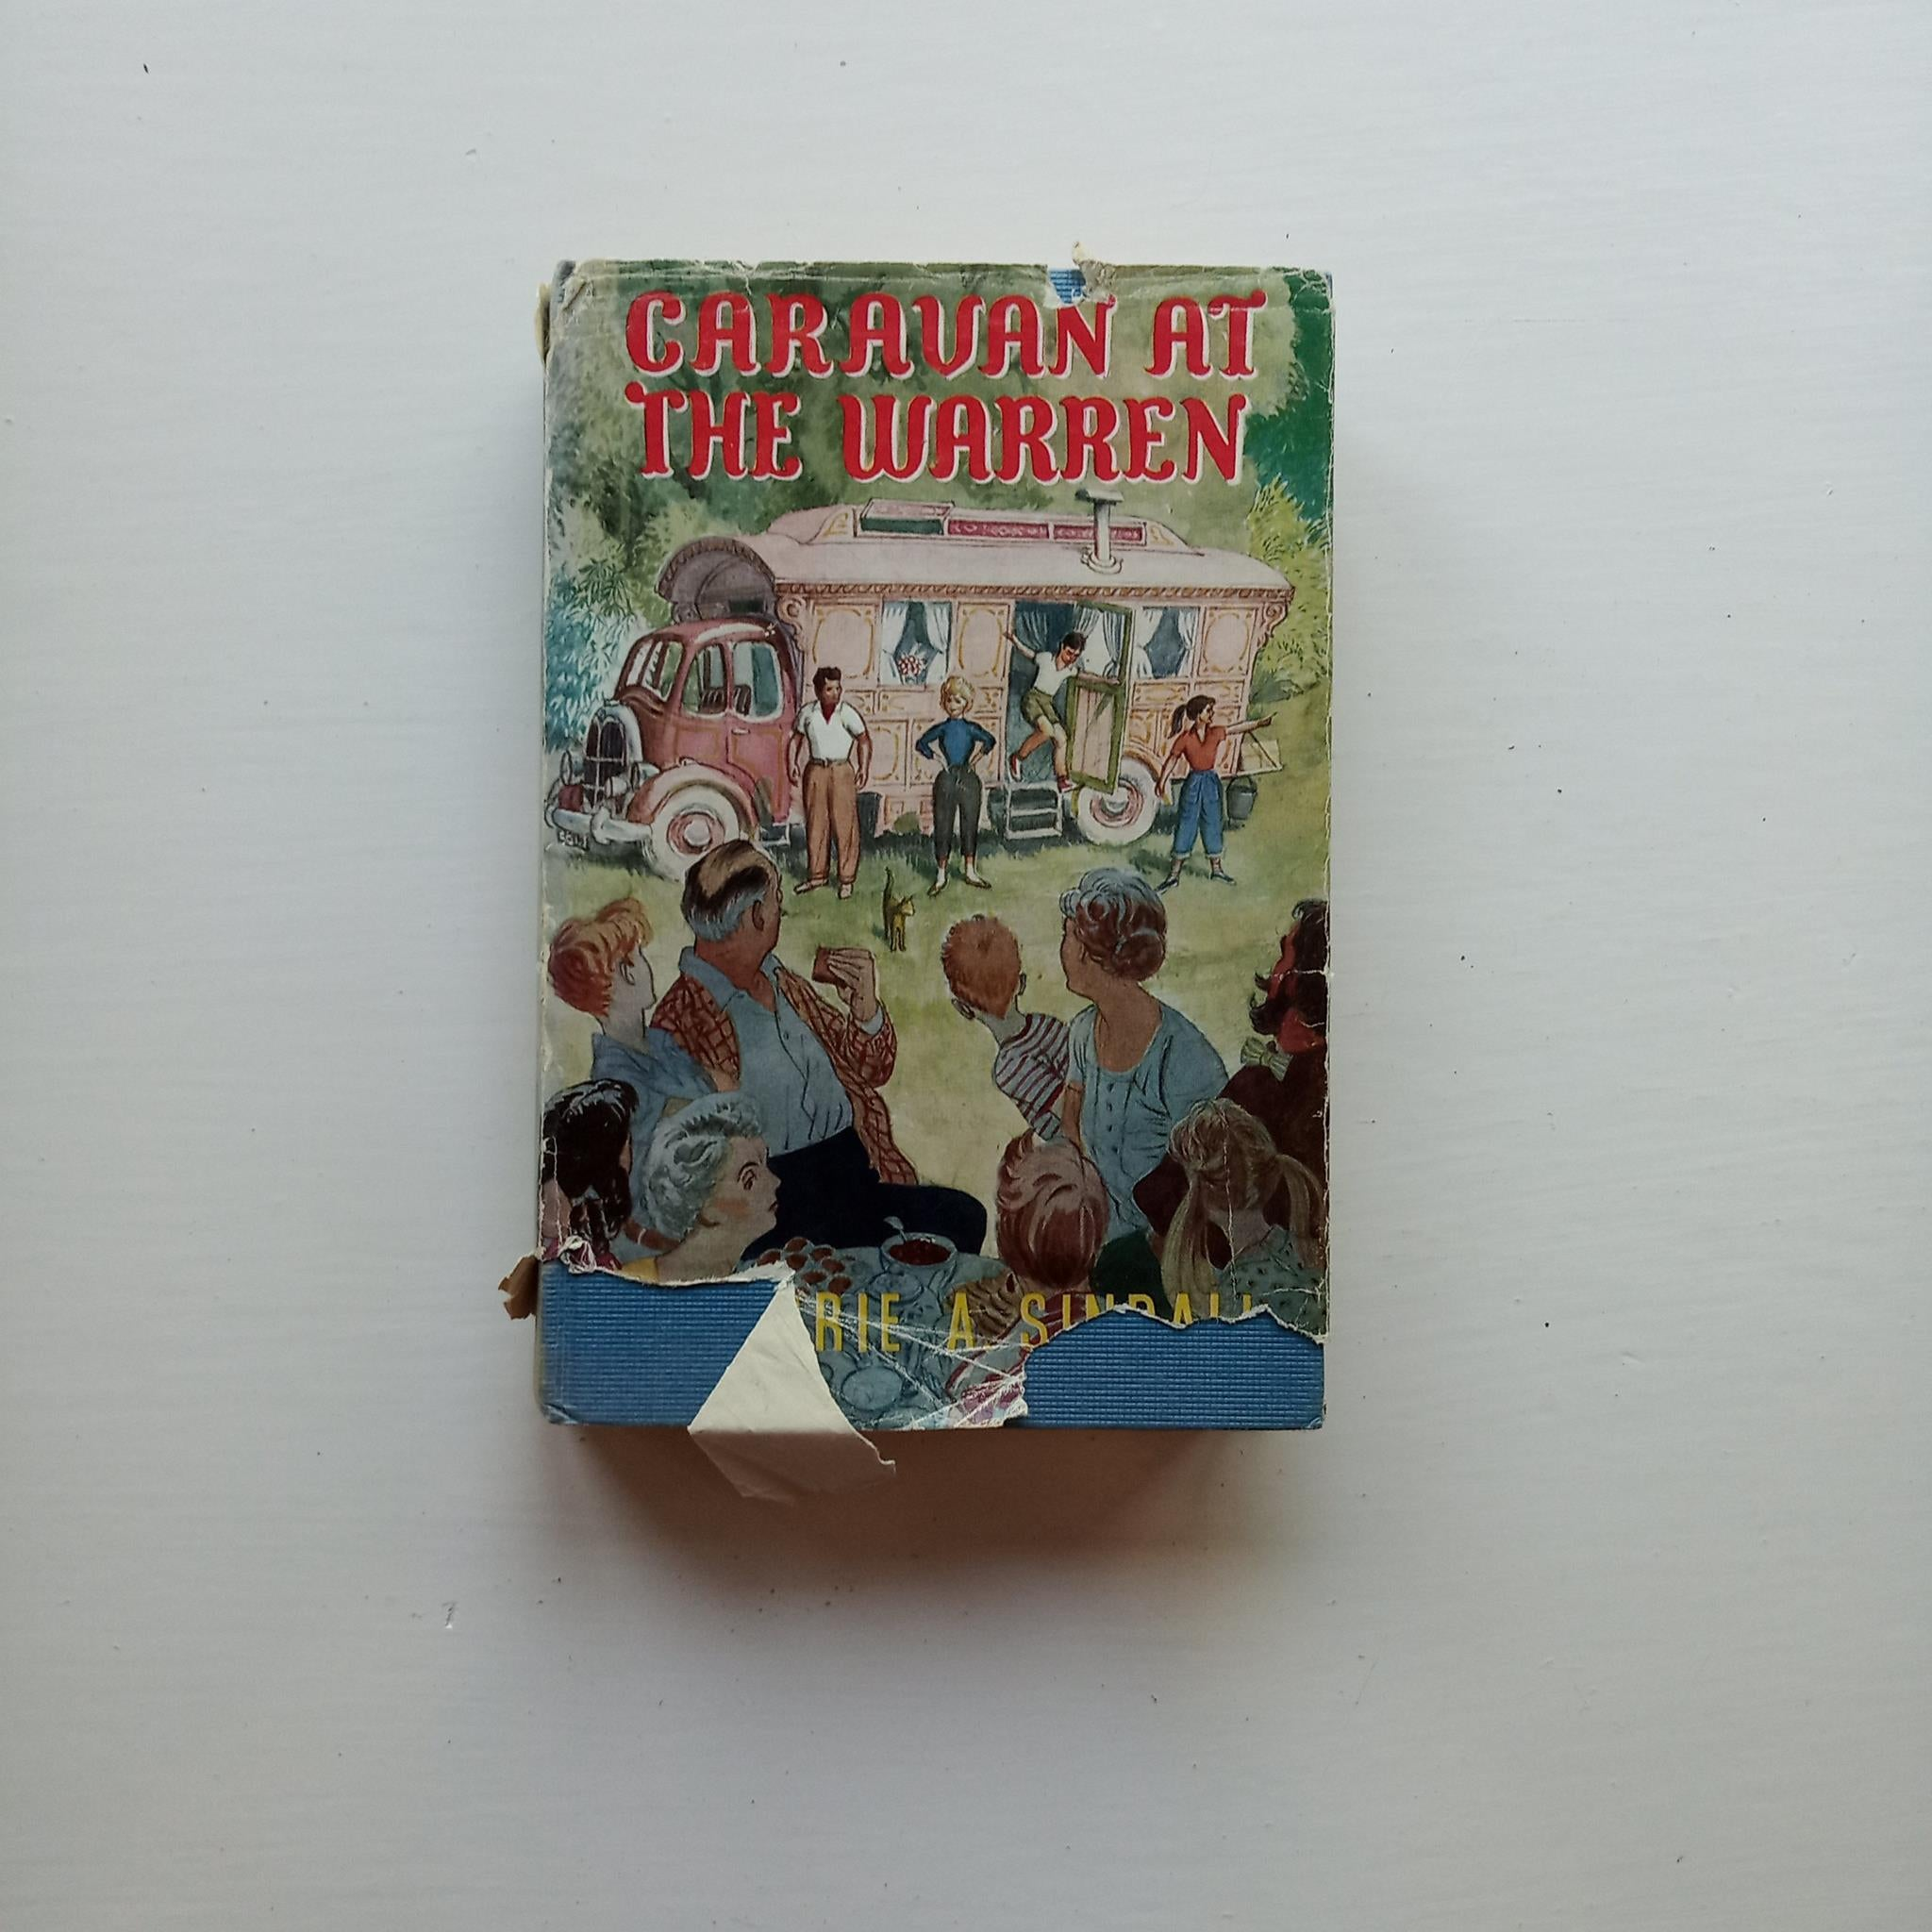 Caravan at the Warren by Marjorie A. Sindall